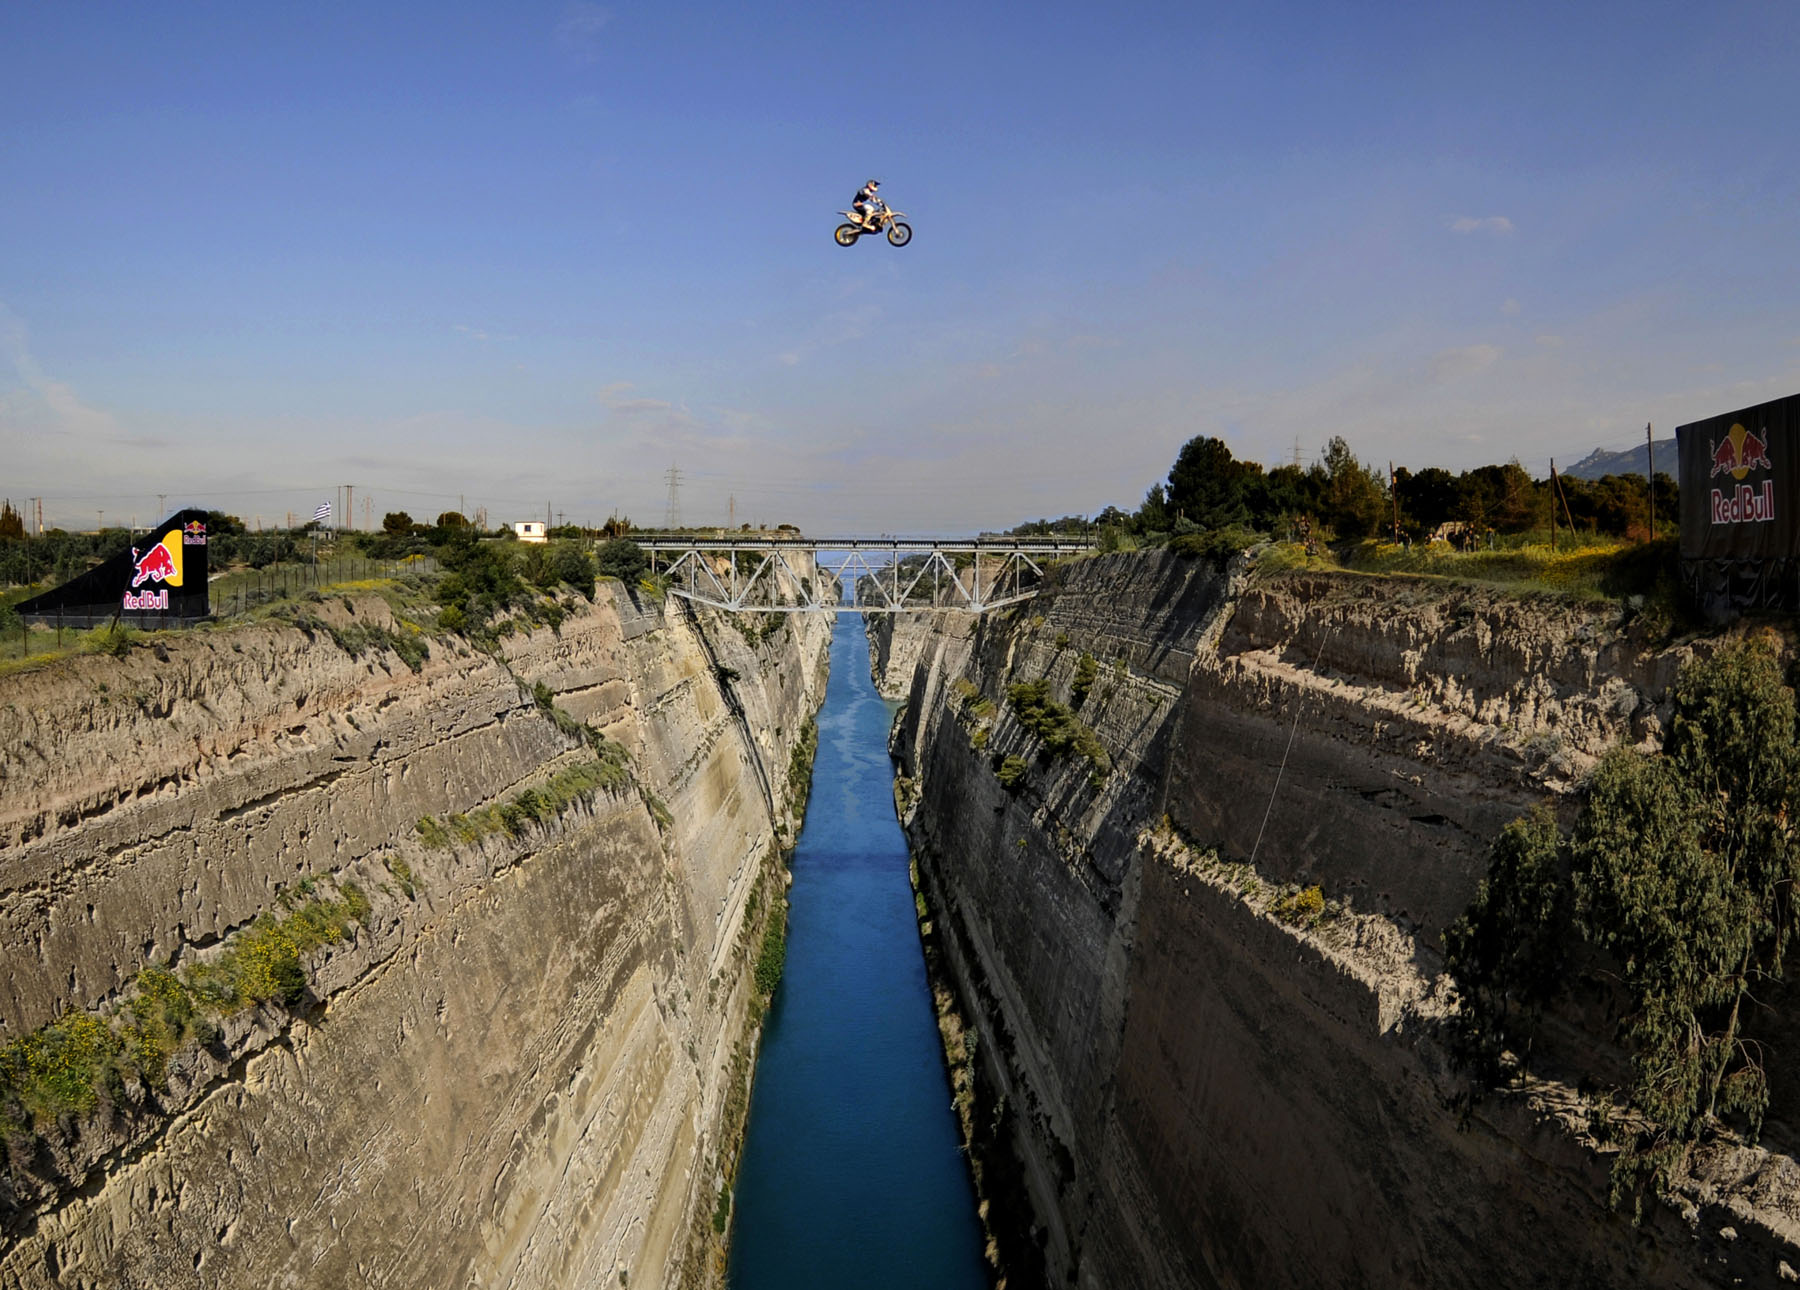 DC Moto Athlete, Robbie Maddison Jumps Over The Canal Of ...